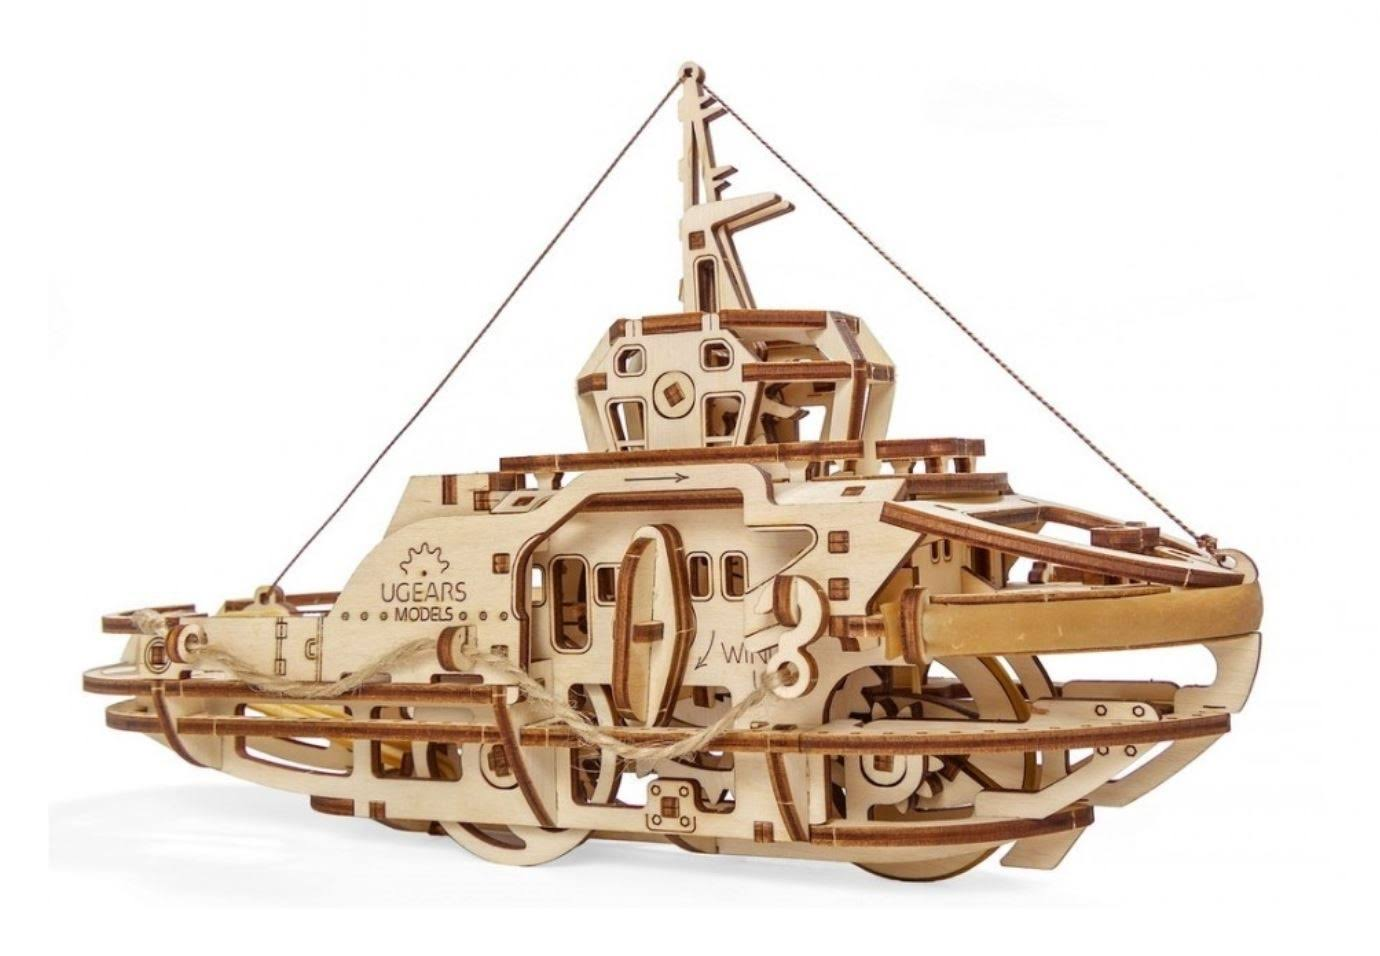 UGEARS Model Tugboat Wooden Kit - U70078 by Hobbies